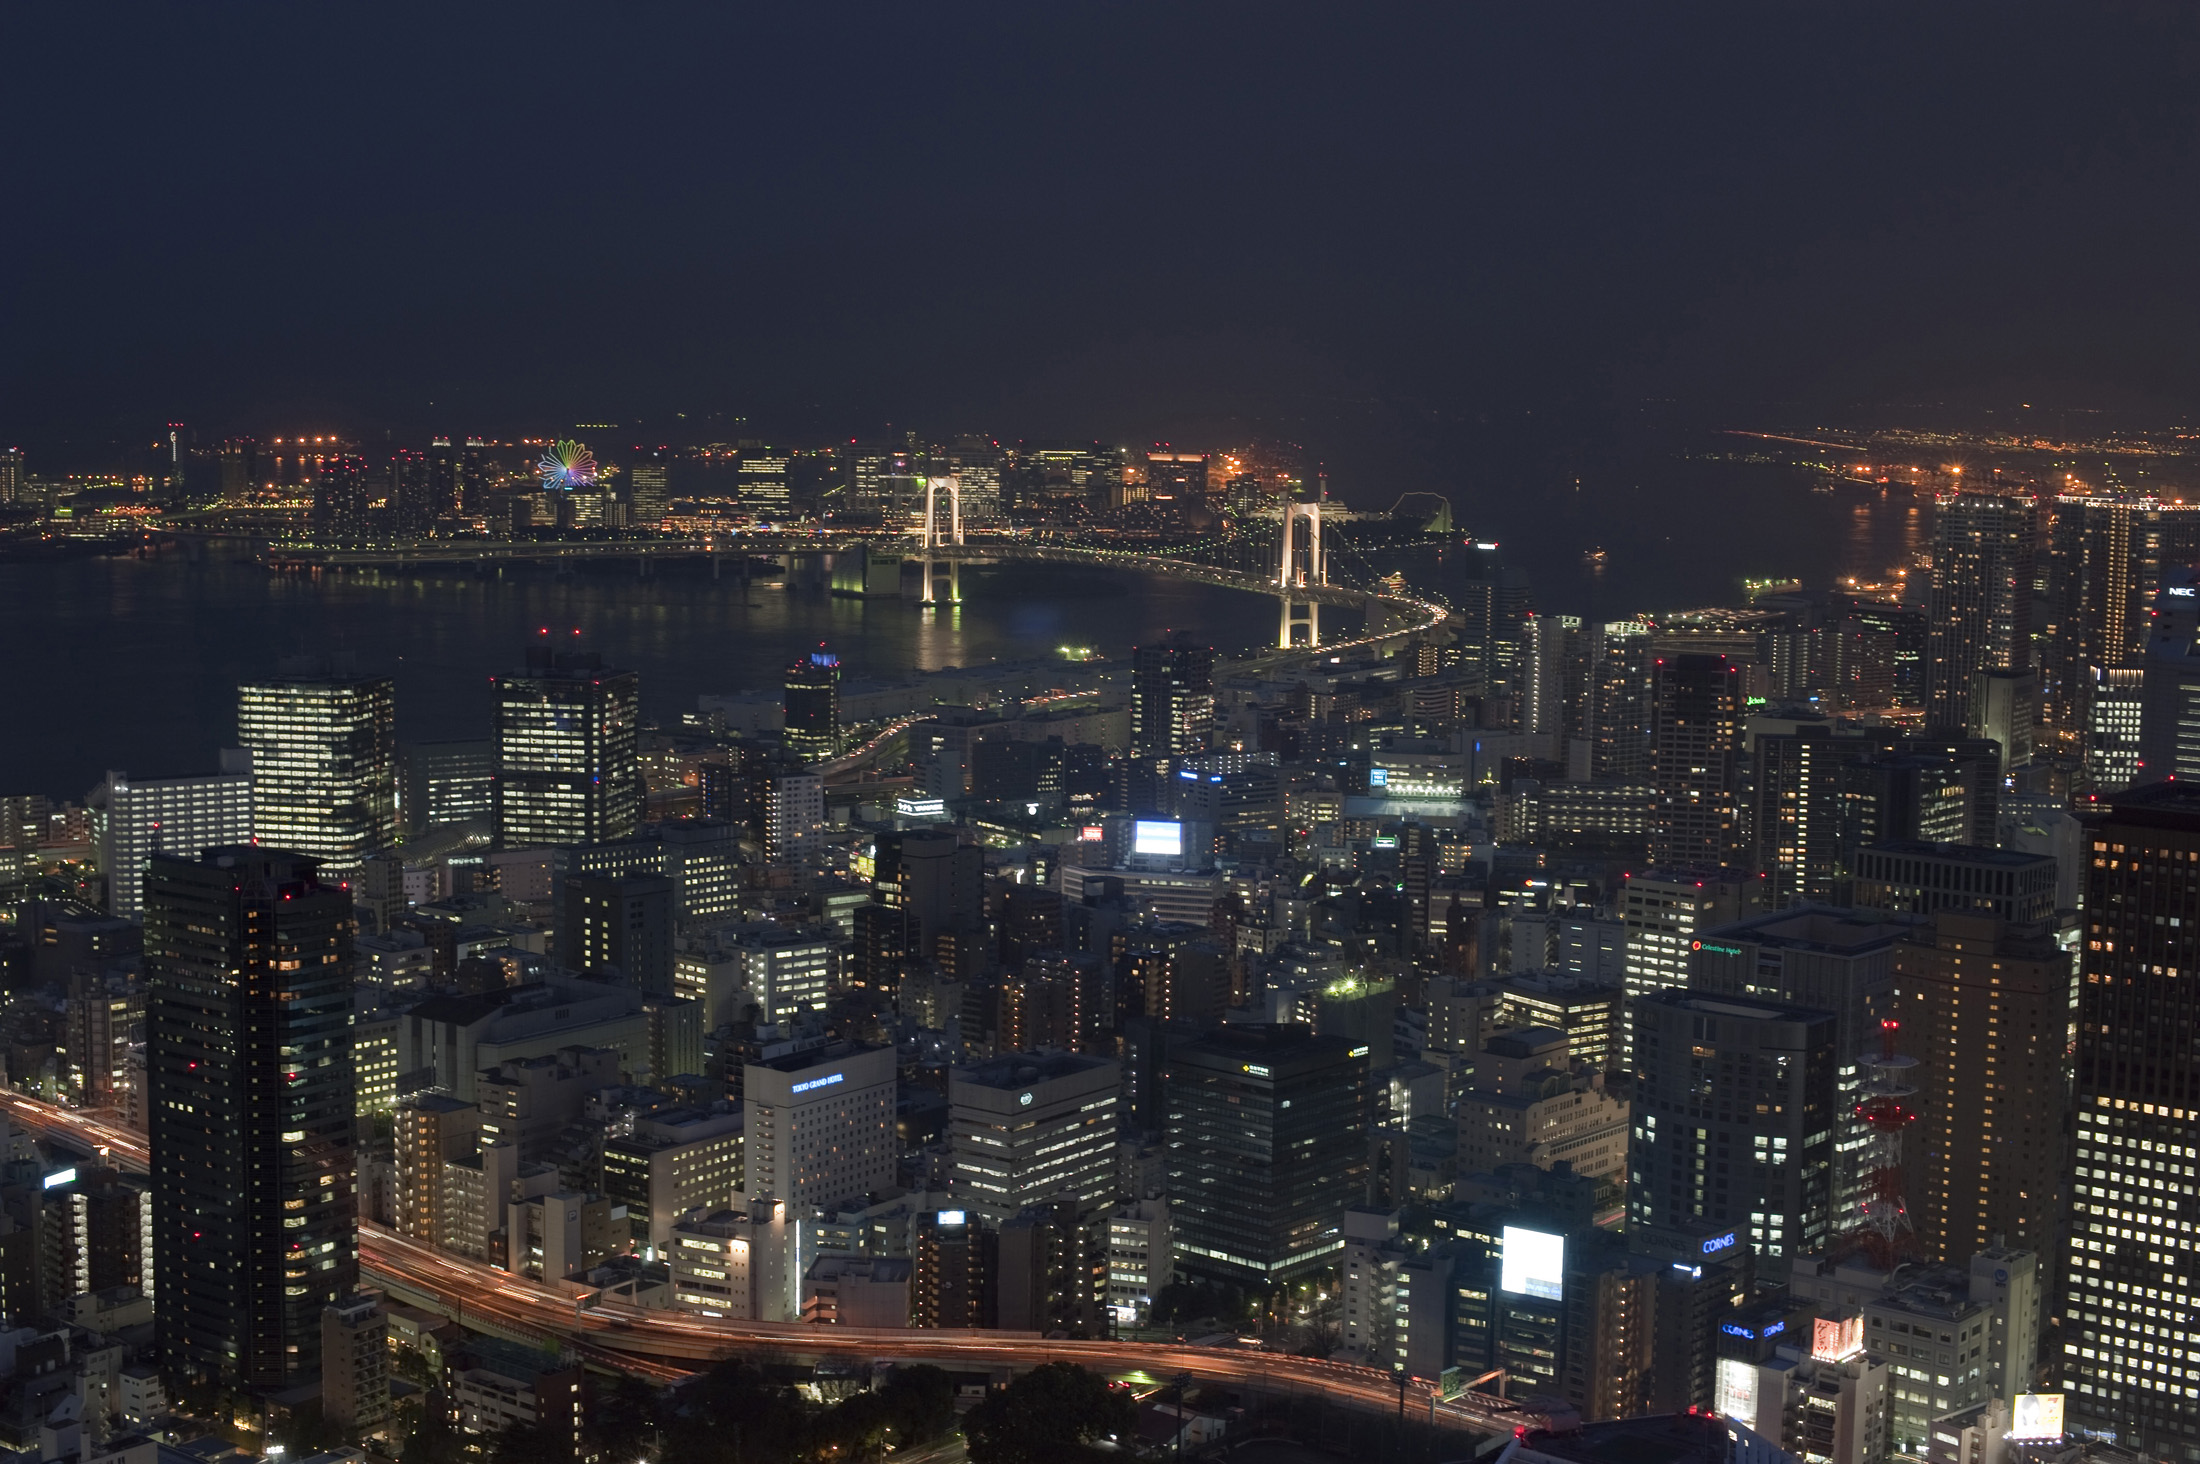 aerial view of tokyo at night featuring the rainbow bridge